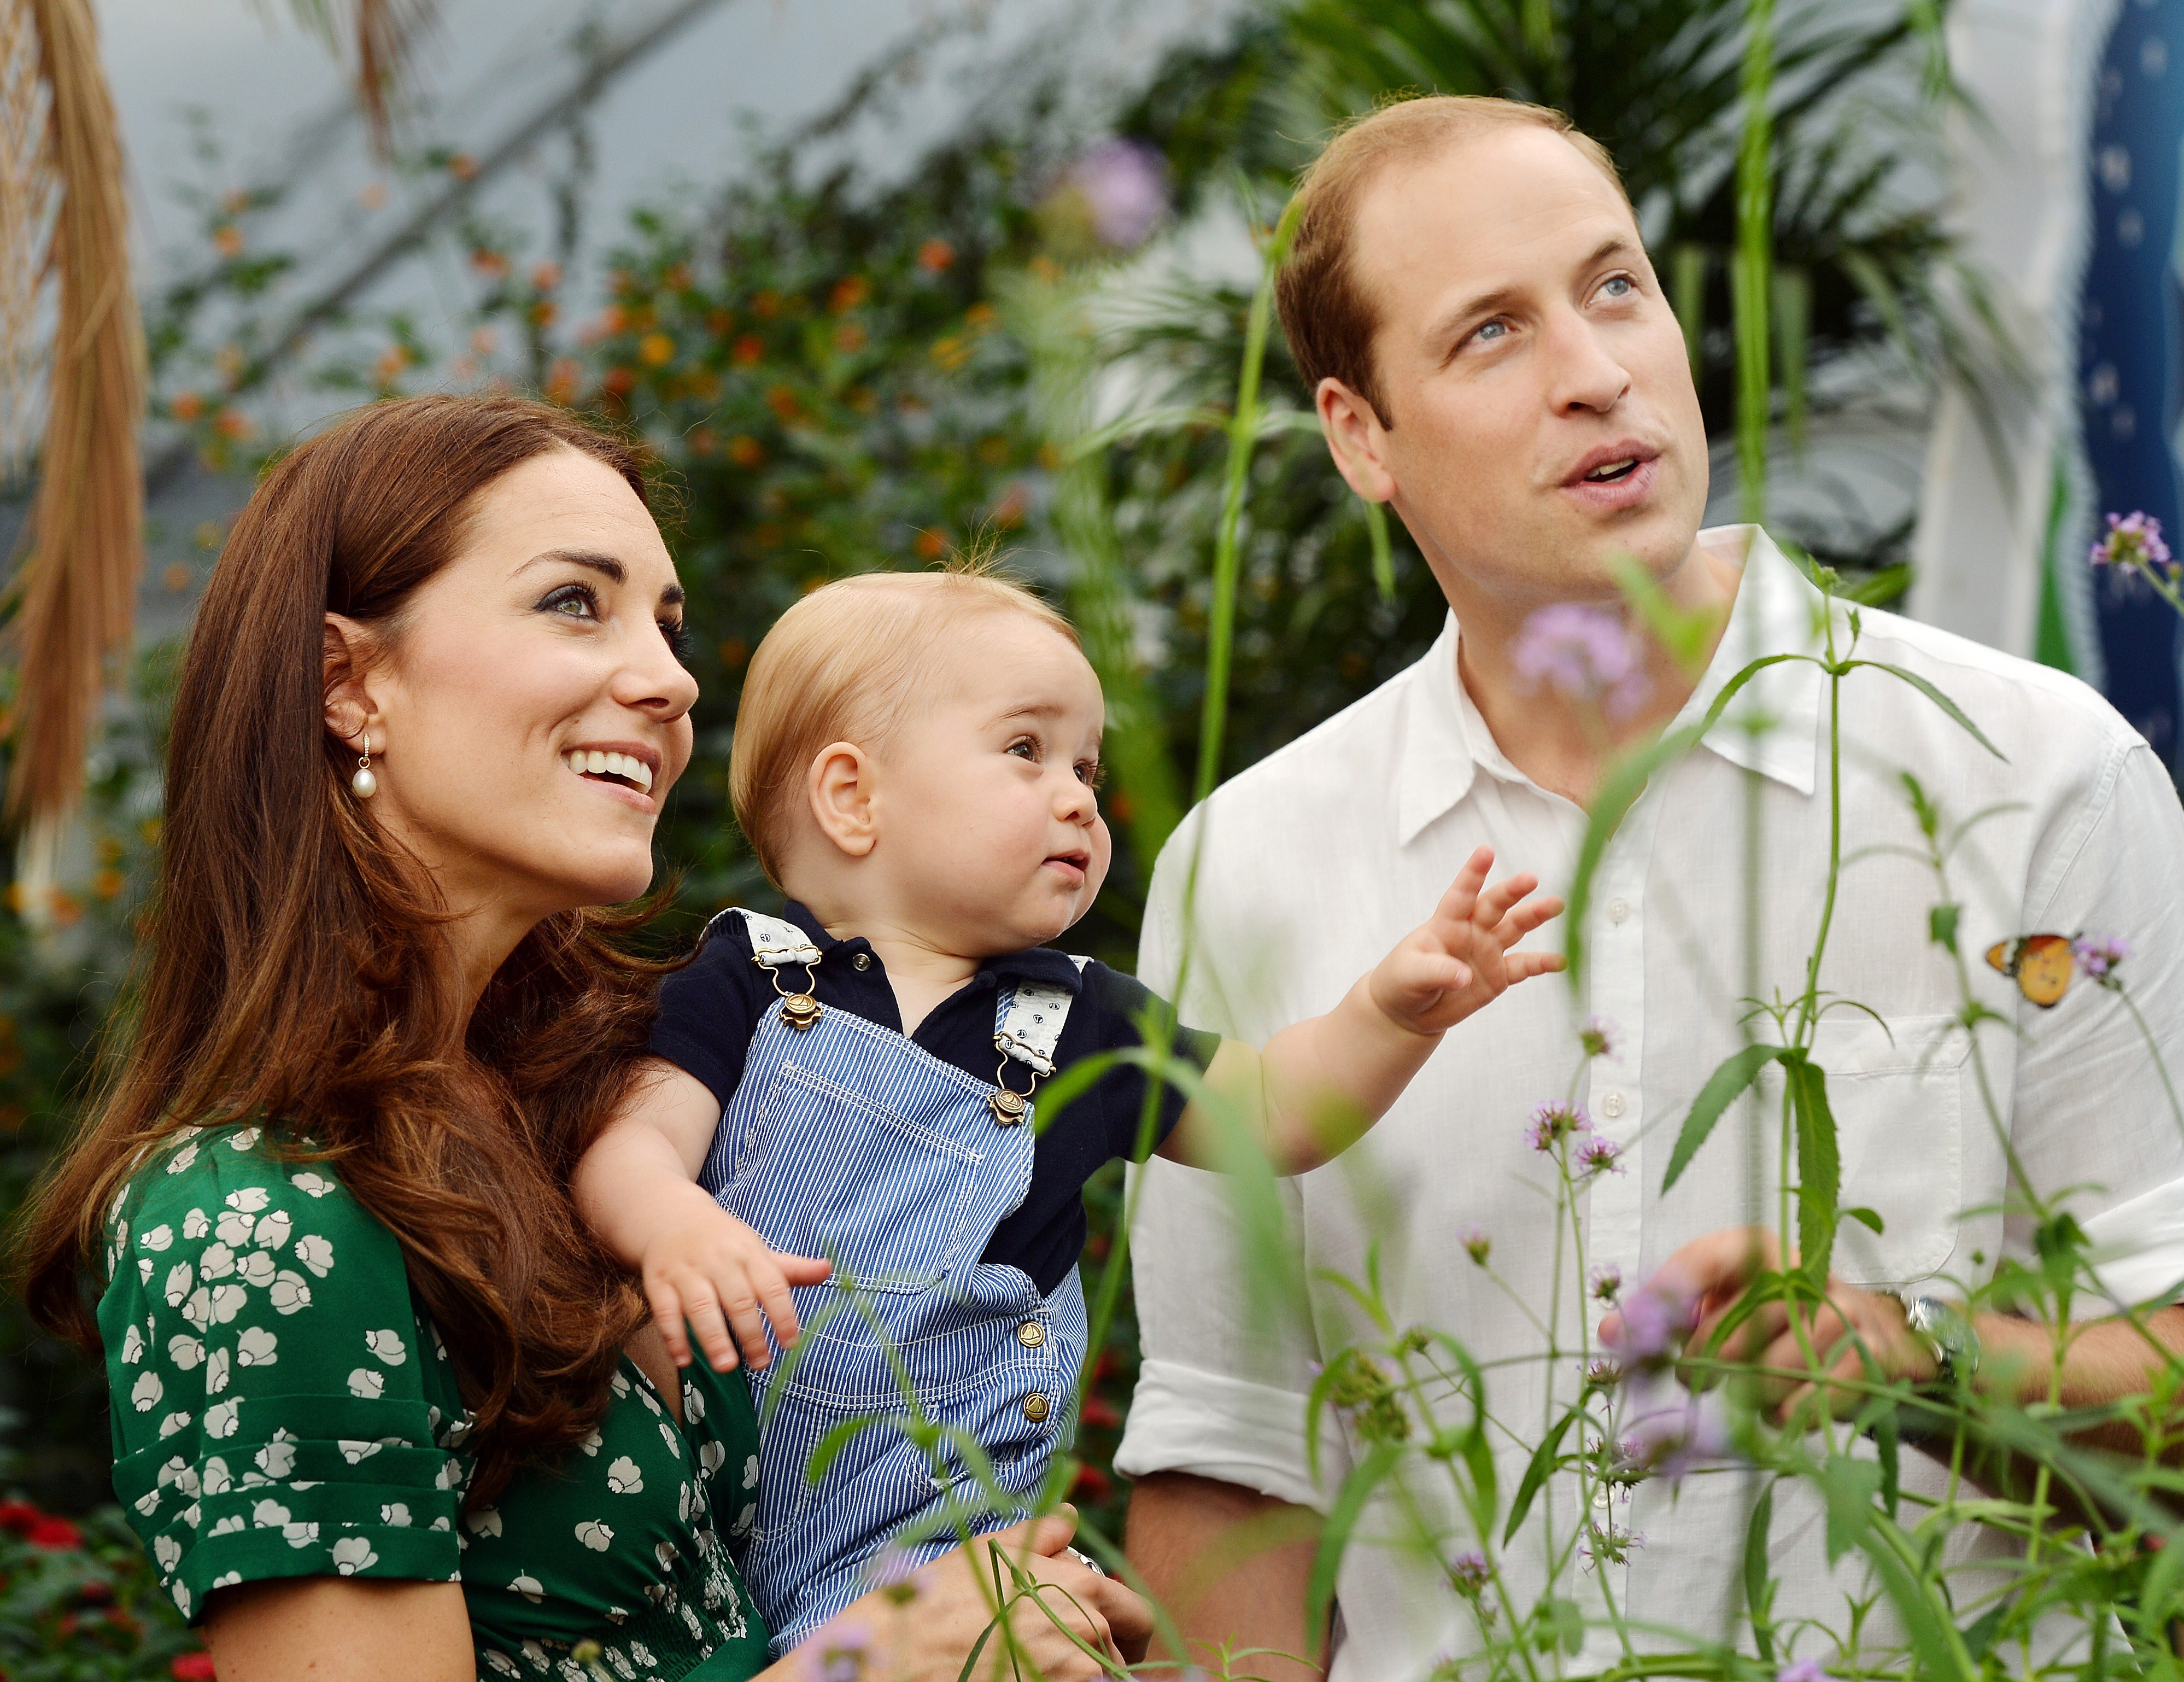 BRITAIN-ROYALS-GEORGE-BIRTHDAY-MESSAGE-FAMILY